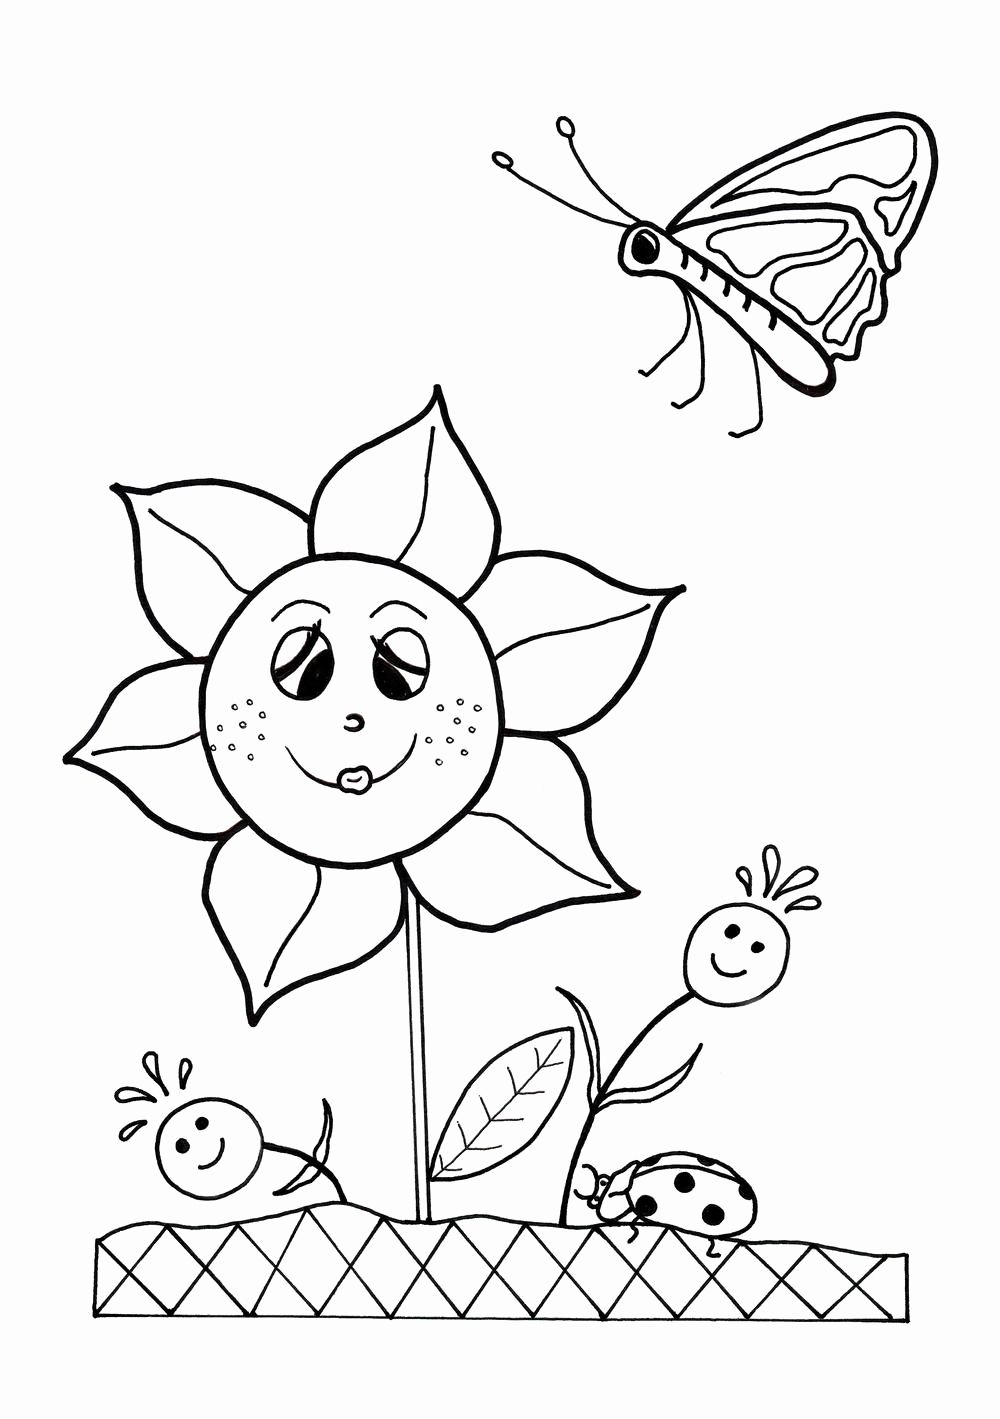 Printable Spring Coloring Pages Luxury Dancing Flowers